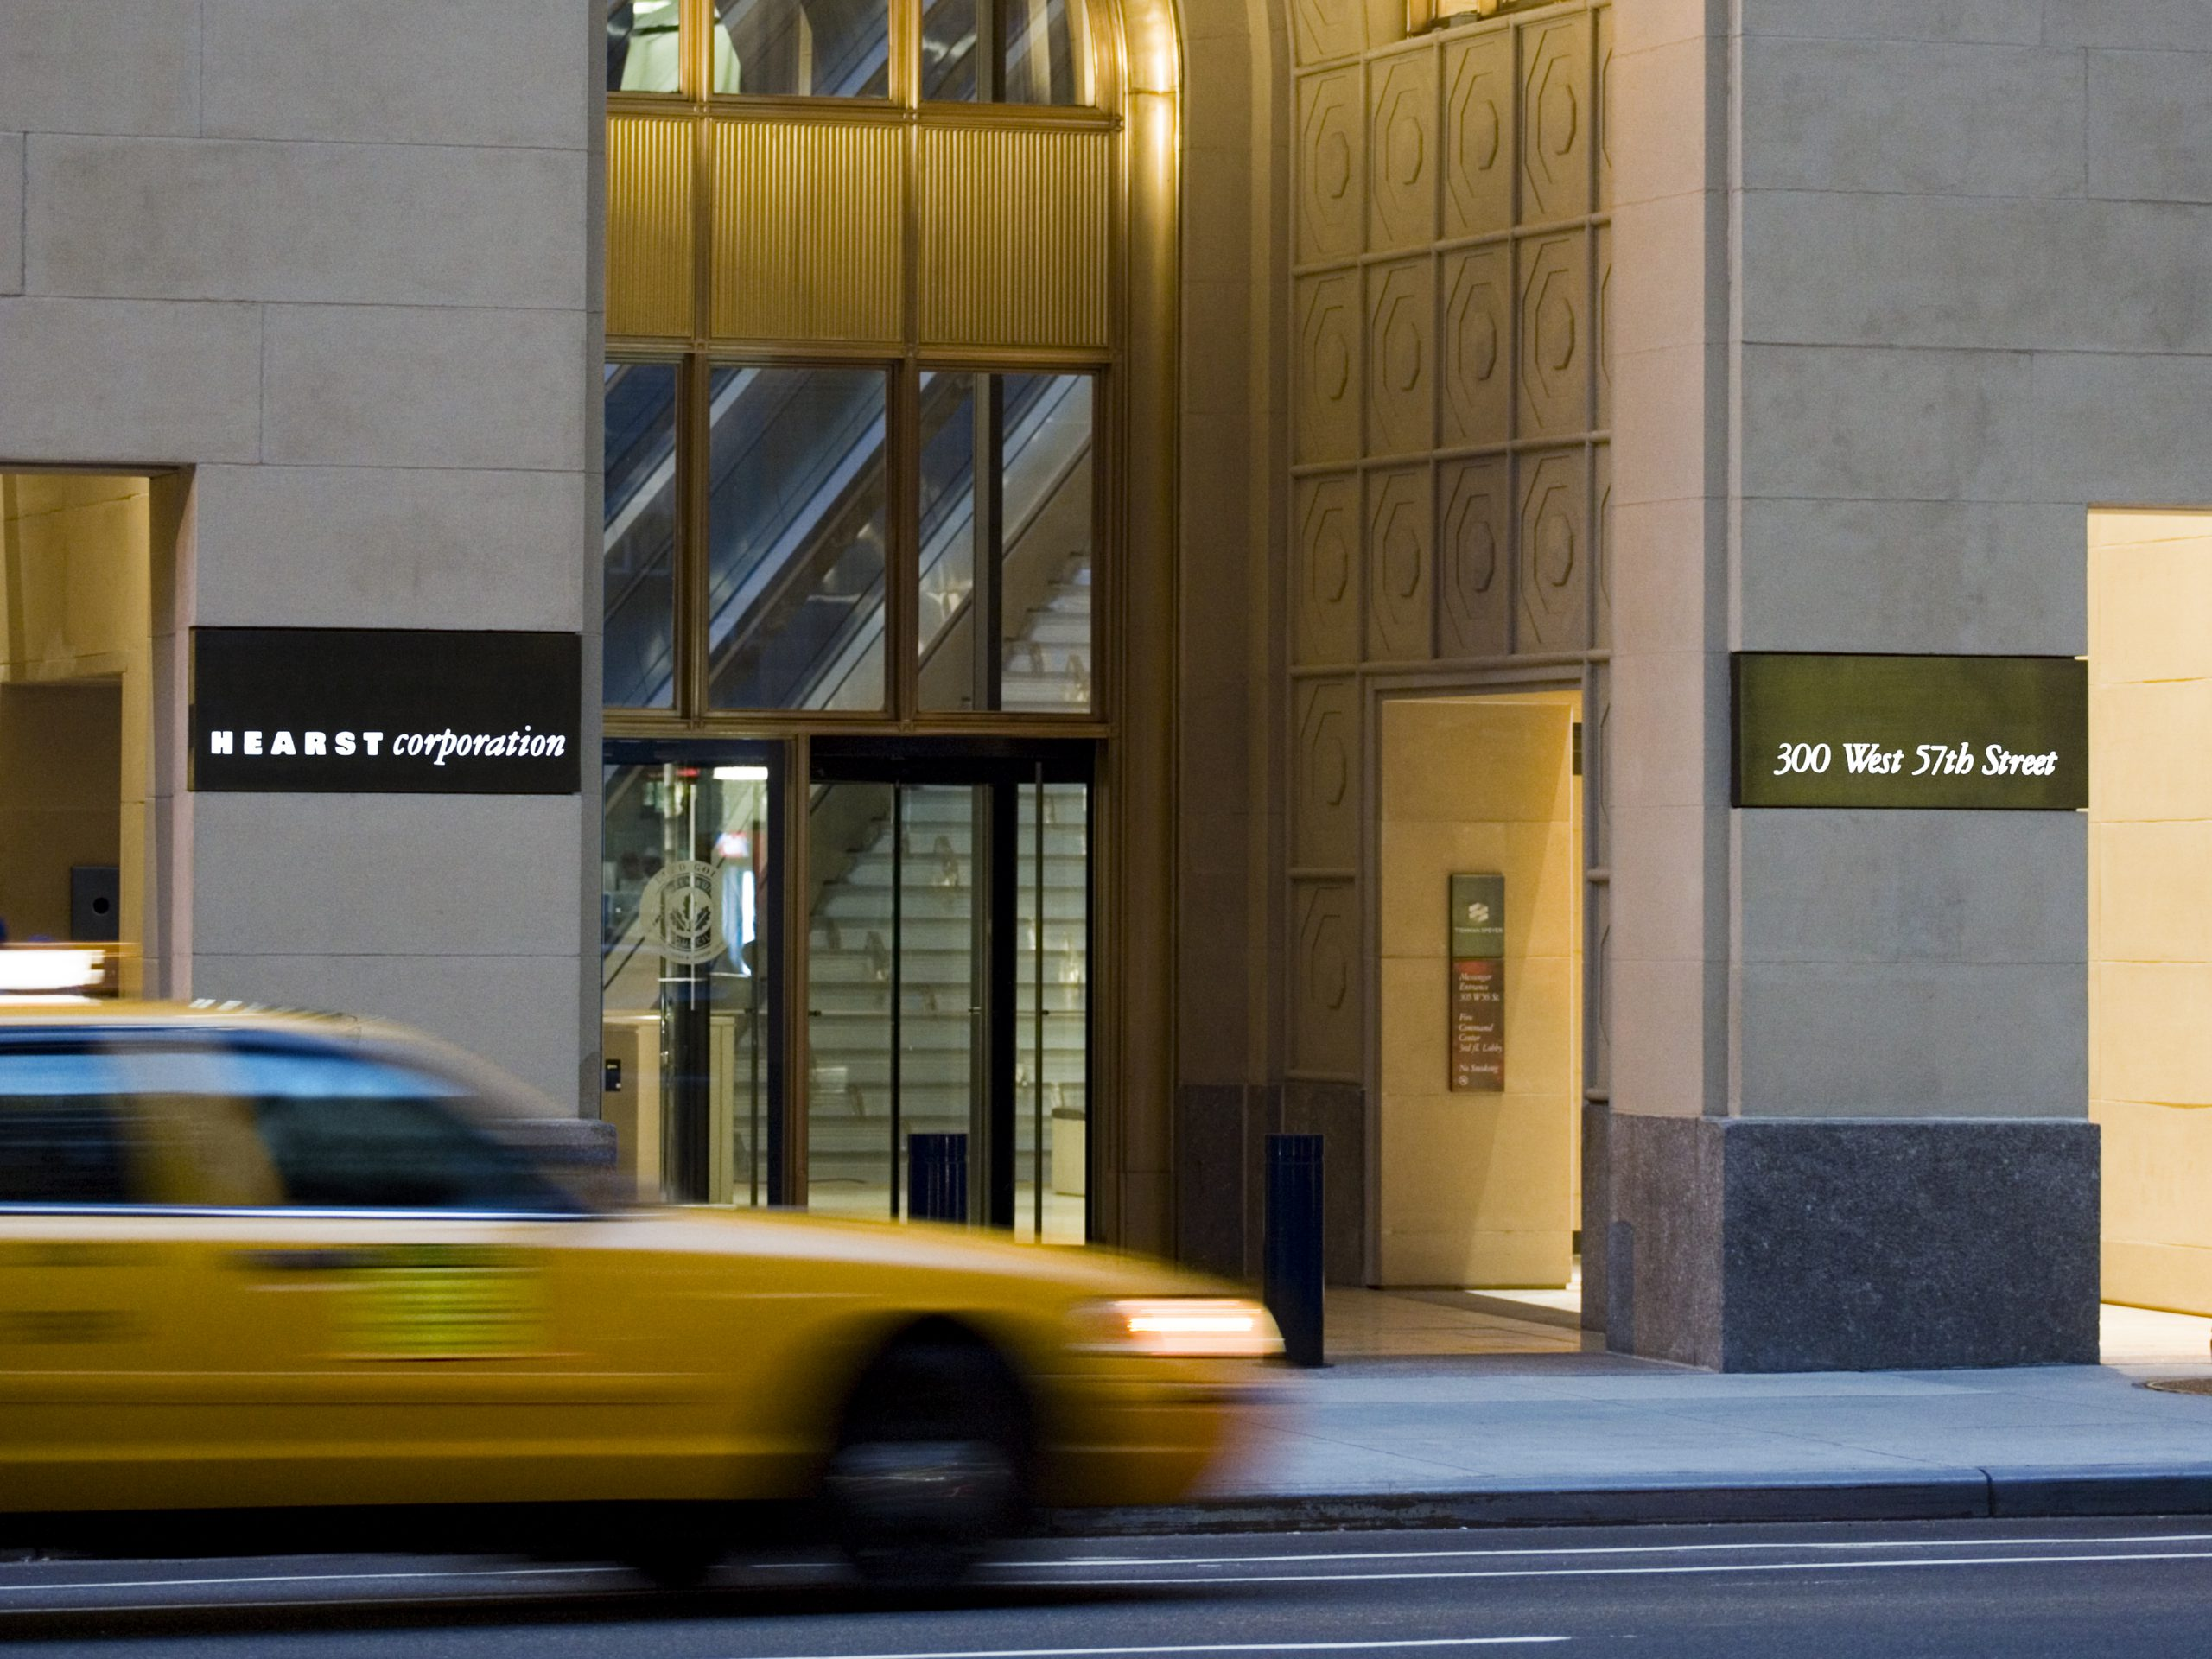 Project image 2 for Hearst Tower Signage, Hearst Corporation